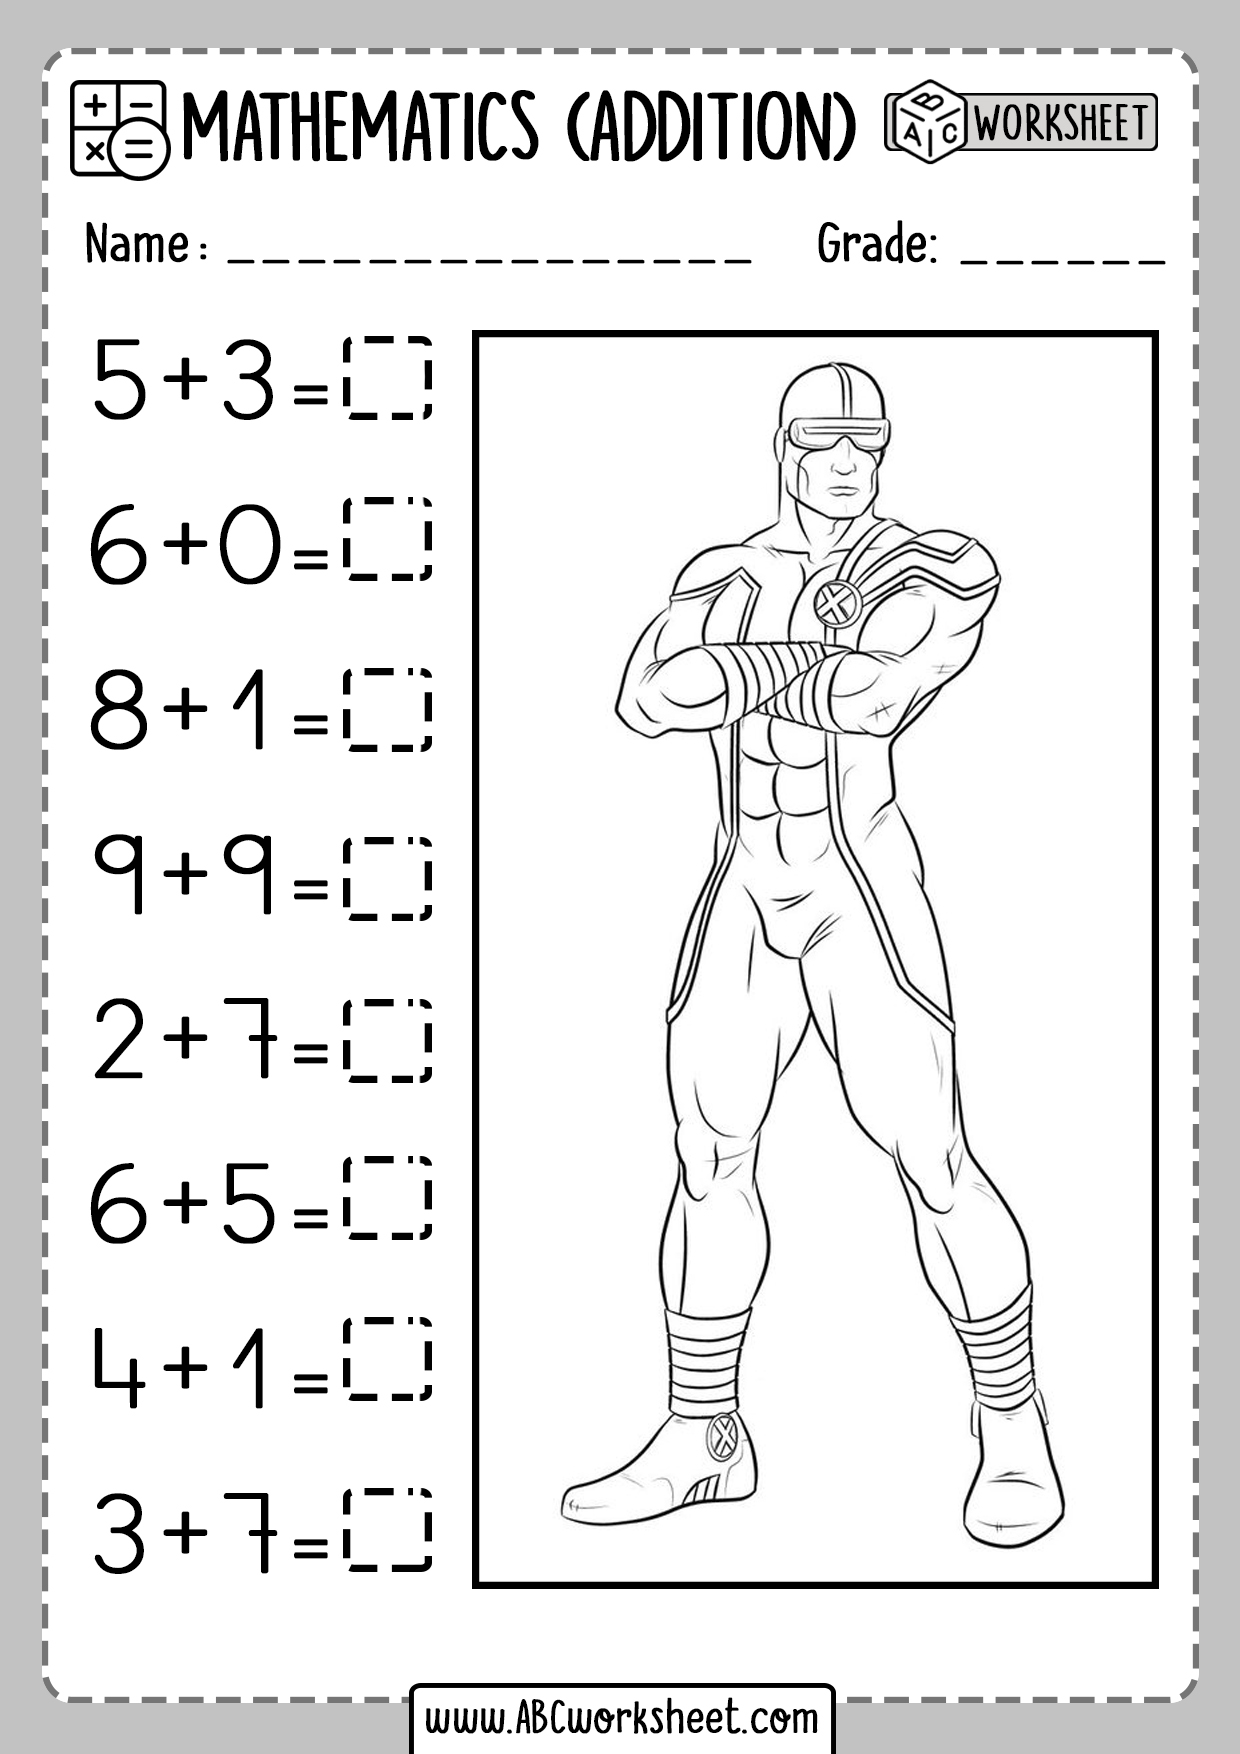 hight resolution of Addition Partial Sums Worksheet   Printable Worksheets and Activities for  Teachers